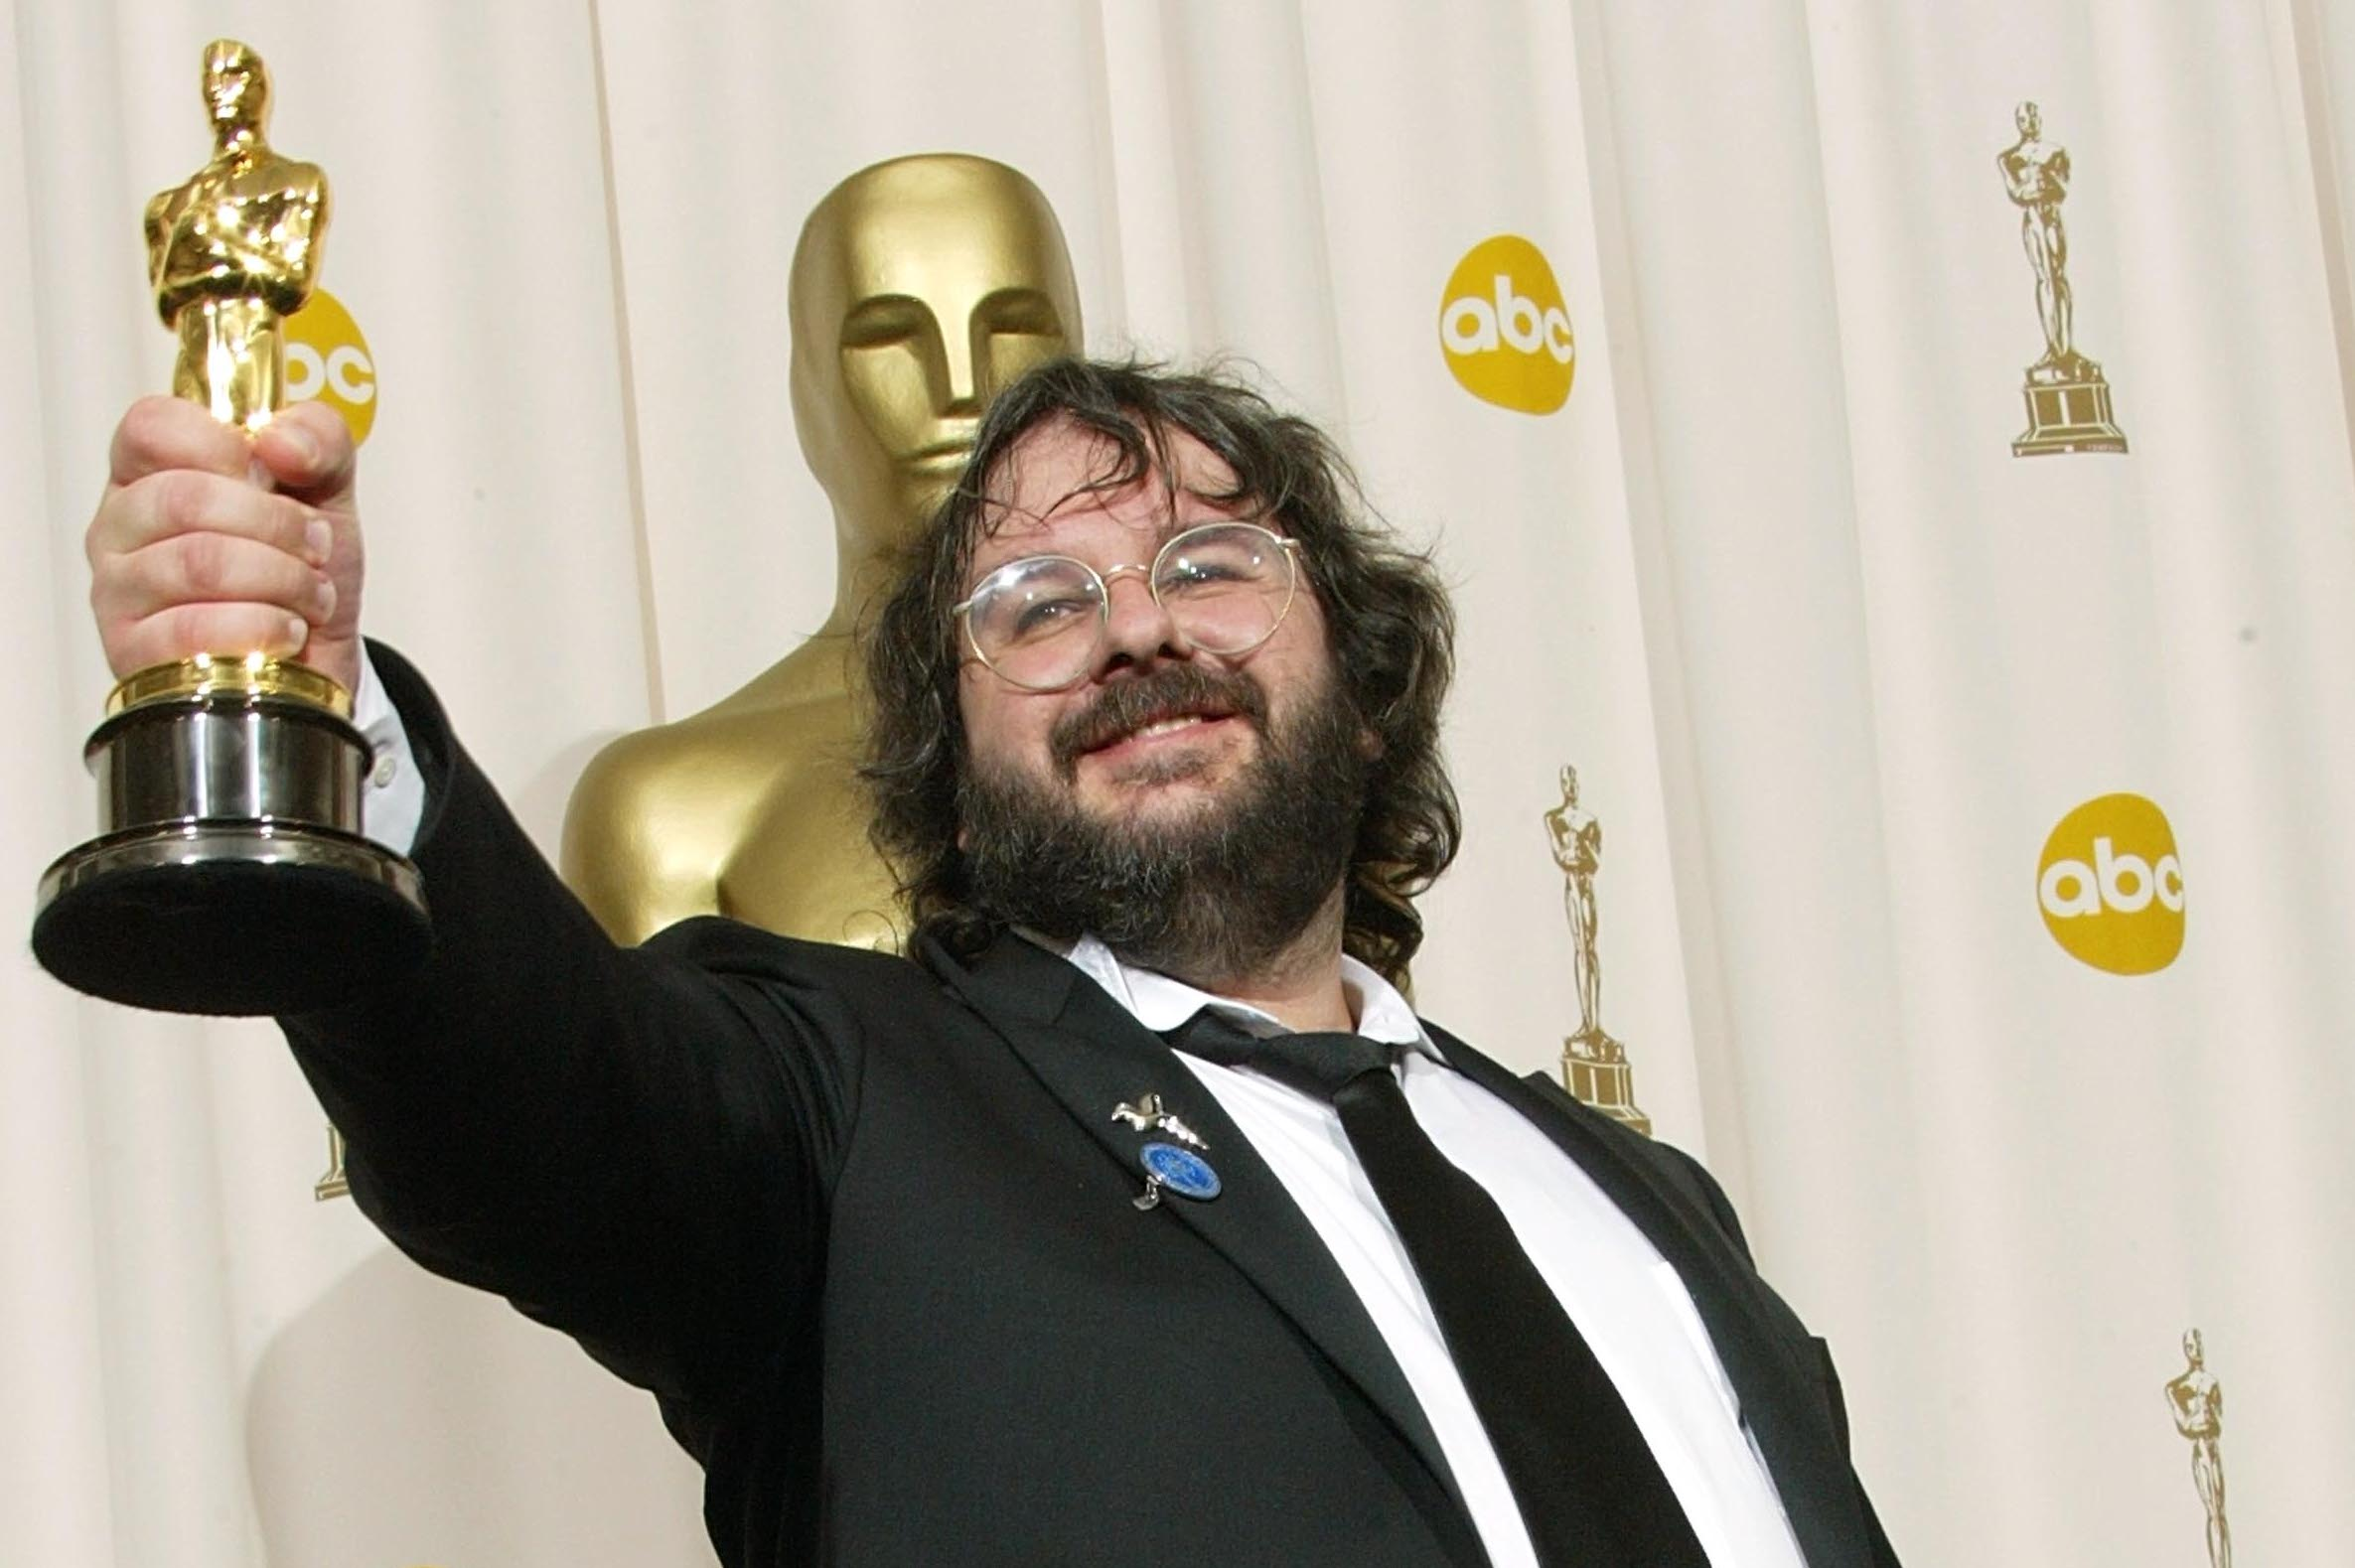 """Peter Jackson holds up his Oscar, smiles, and thinks """"Lord of the Rings rules!"""""""